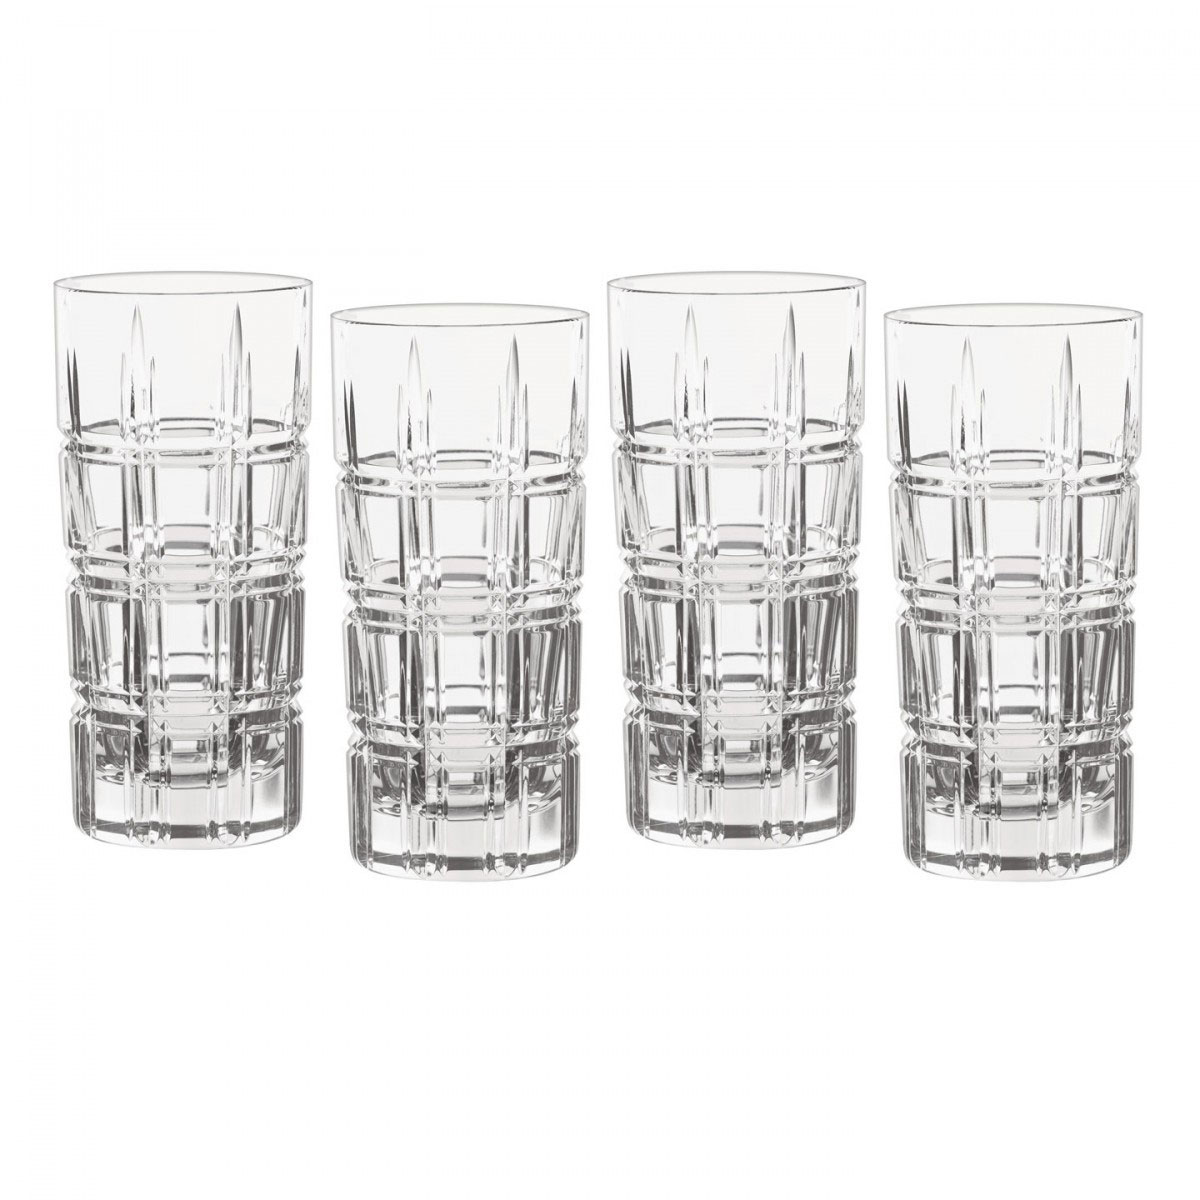 Marquis by Waterford Crystal, Crosby Crystal Hiball, Set of Four